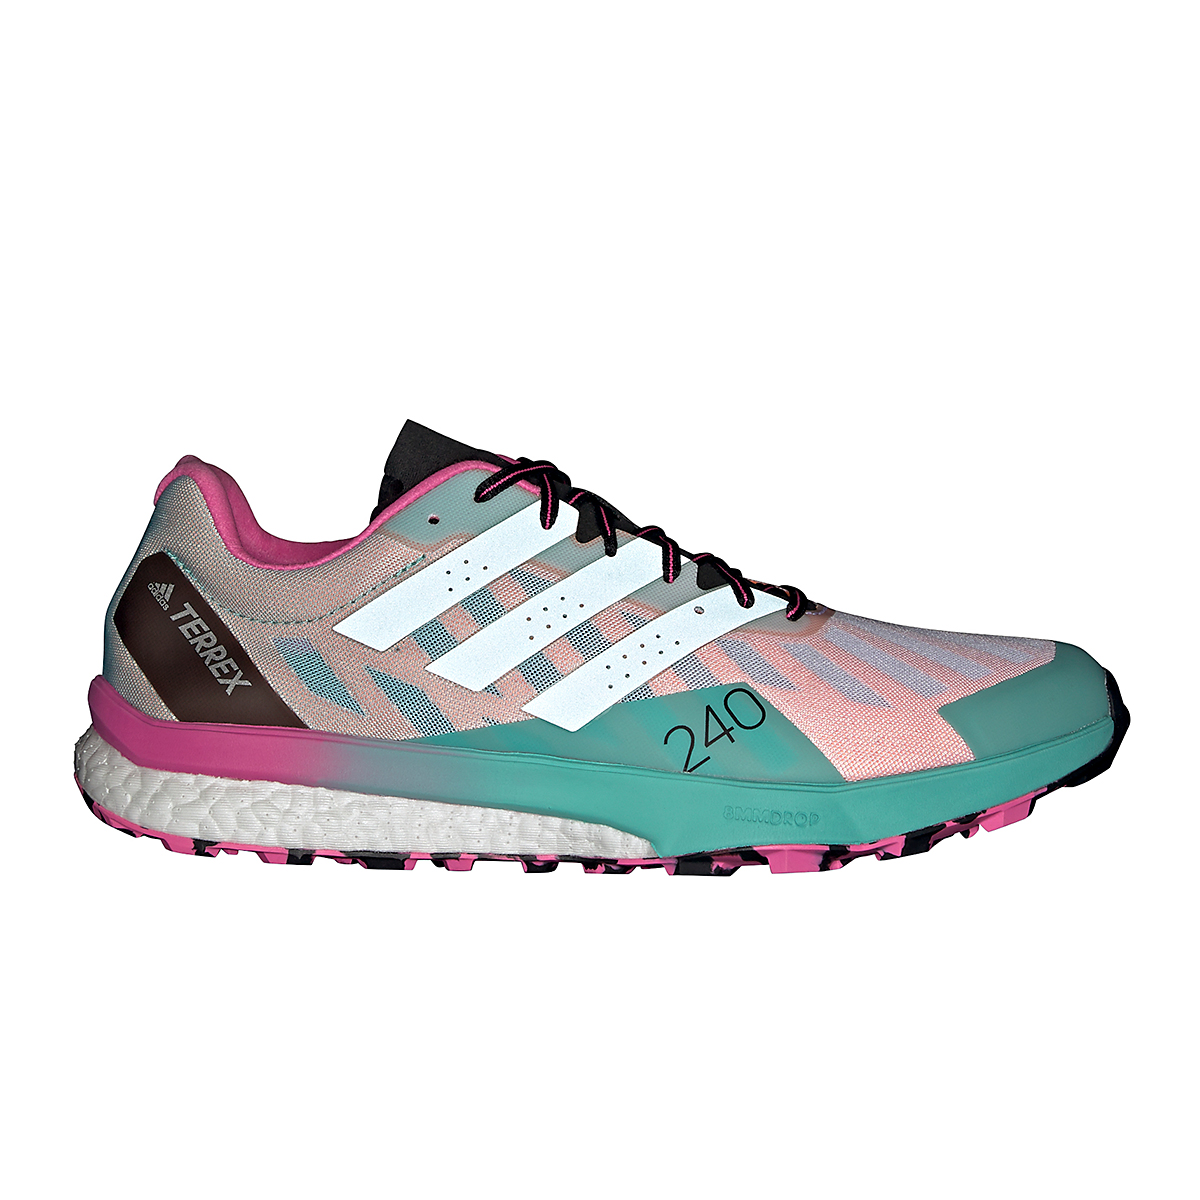 Men's Adidas Terrex Speed Ultra Trail Running Shoe - Color: White/Clear Mint/Screaming Pink - Size: 6.5 - Width: Regular, White/Clear Mint/Screaming Pink, large, image 1